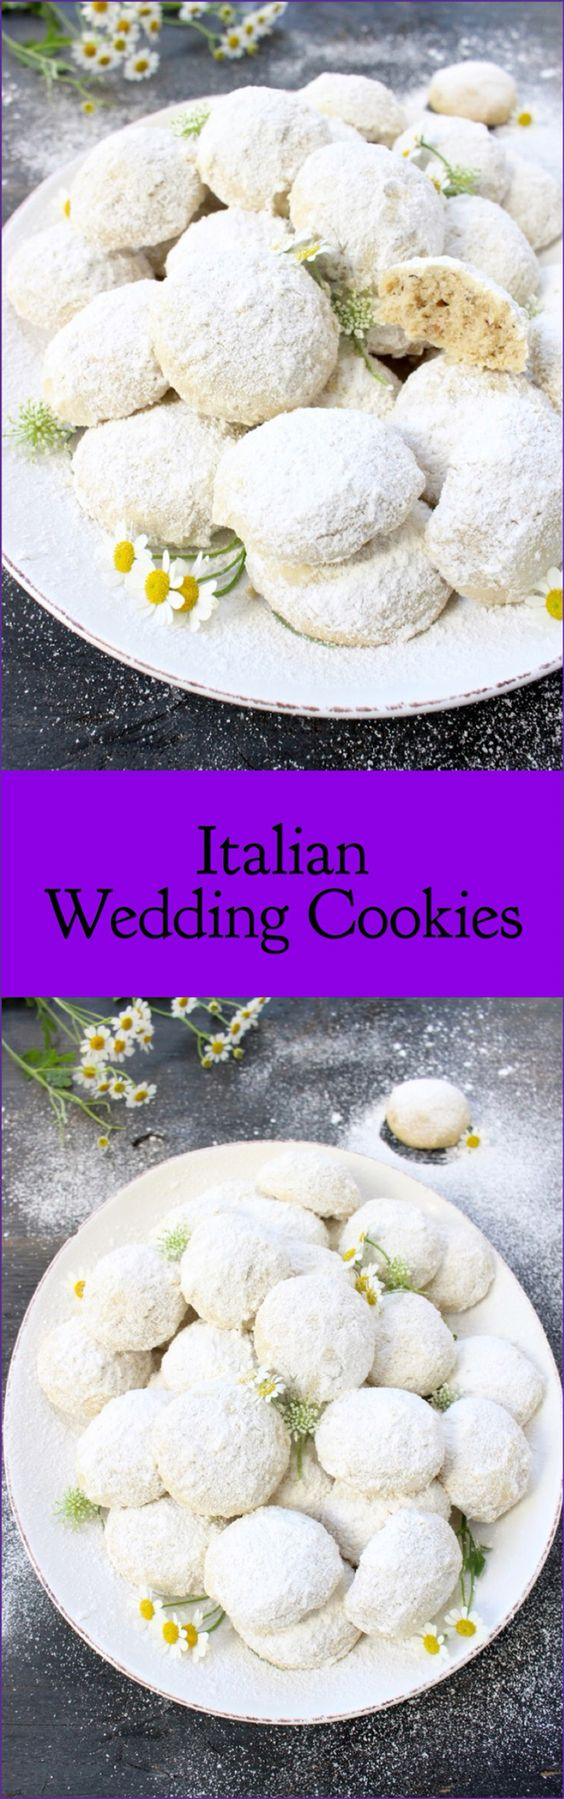 Recipe greek wedding cookies